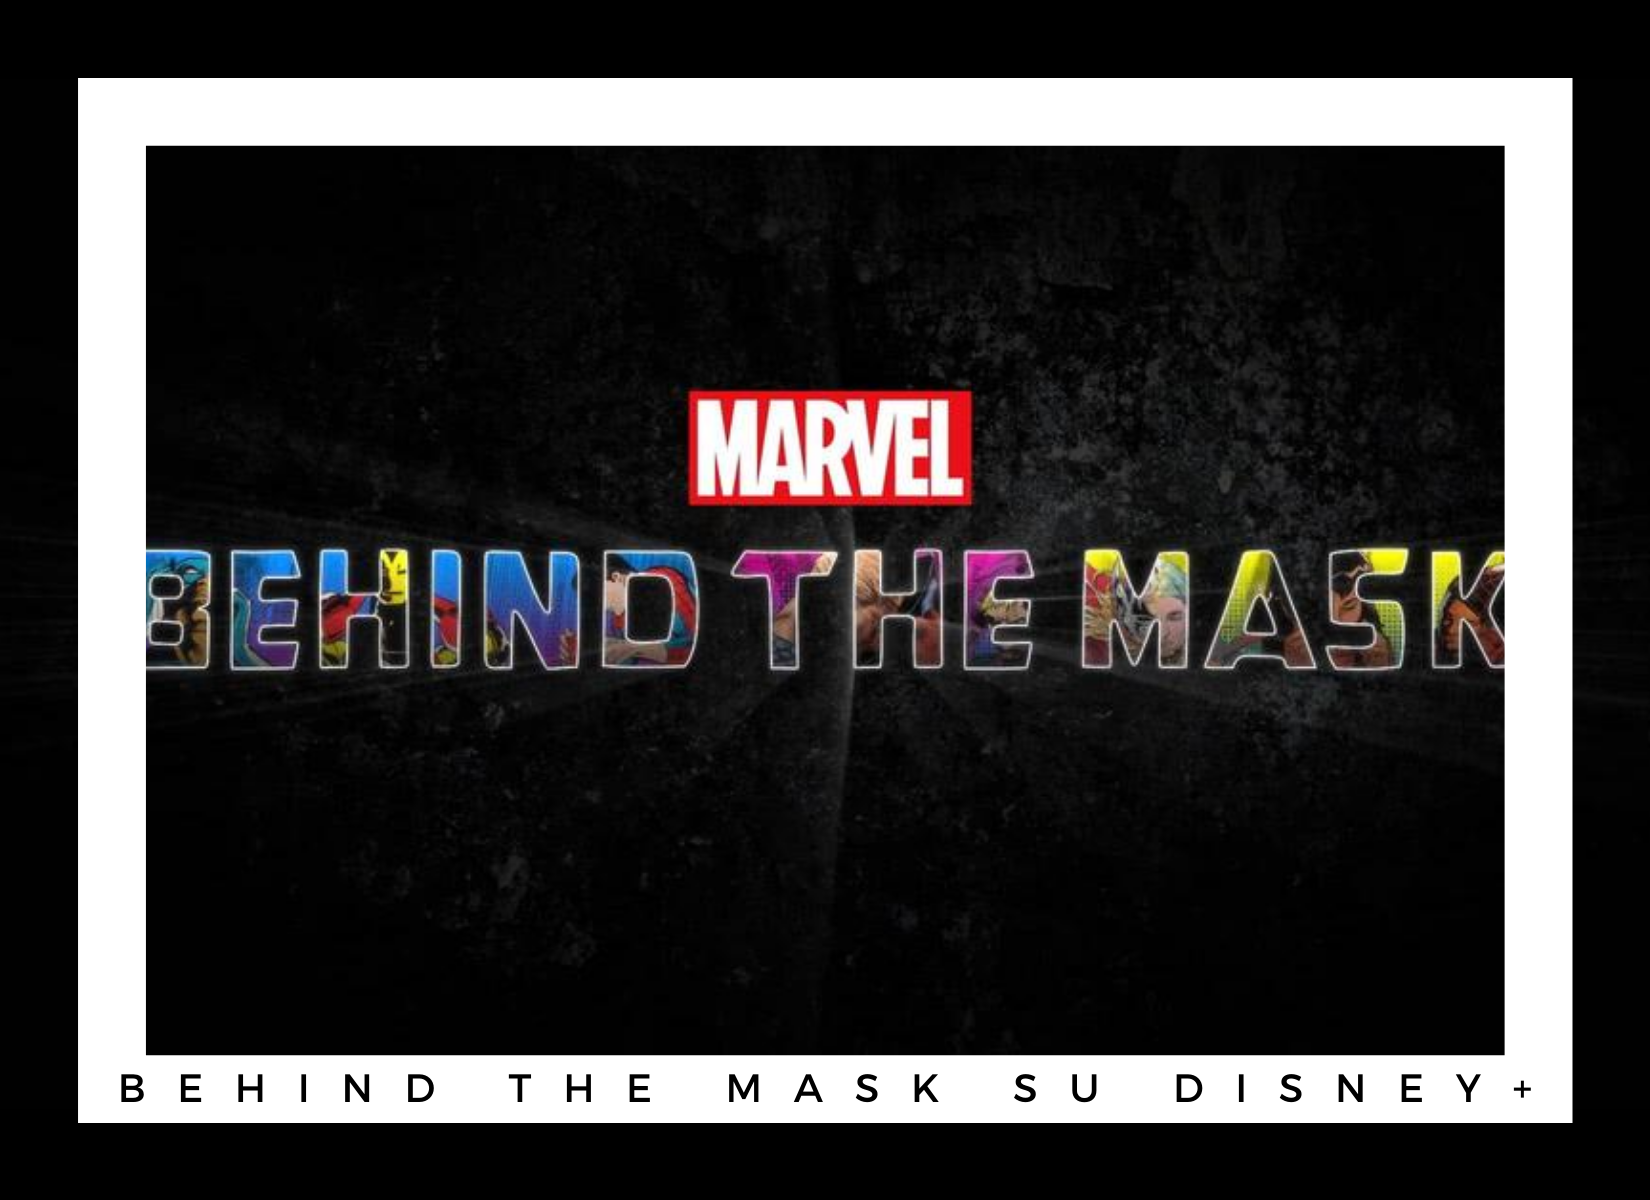 Marvel's Behind The Mask su Disney+